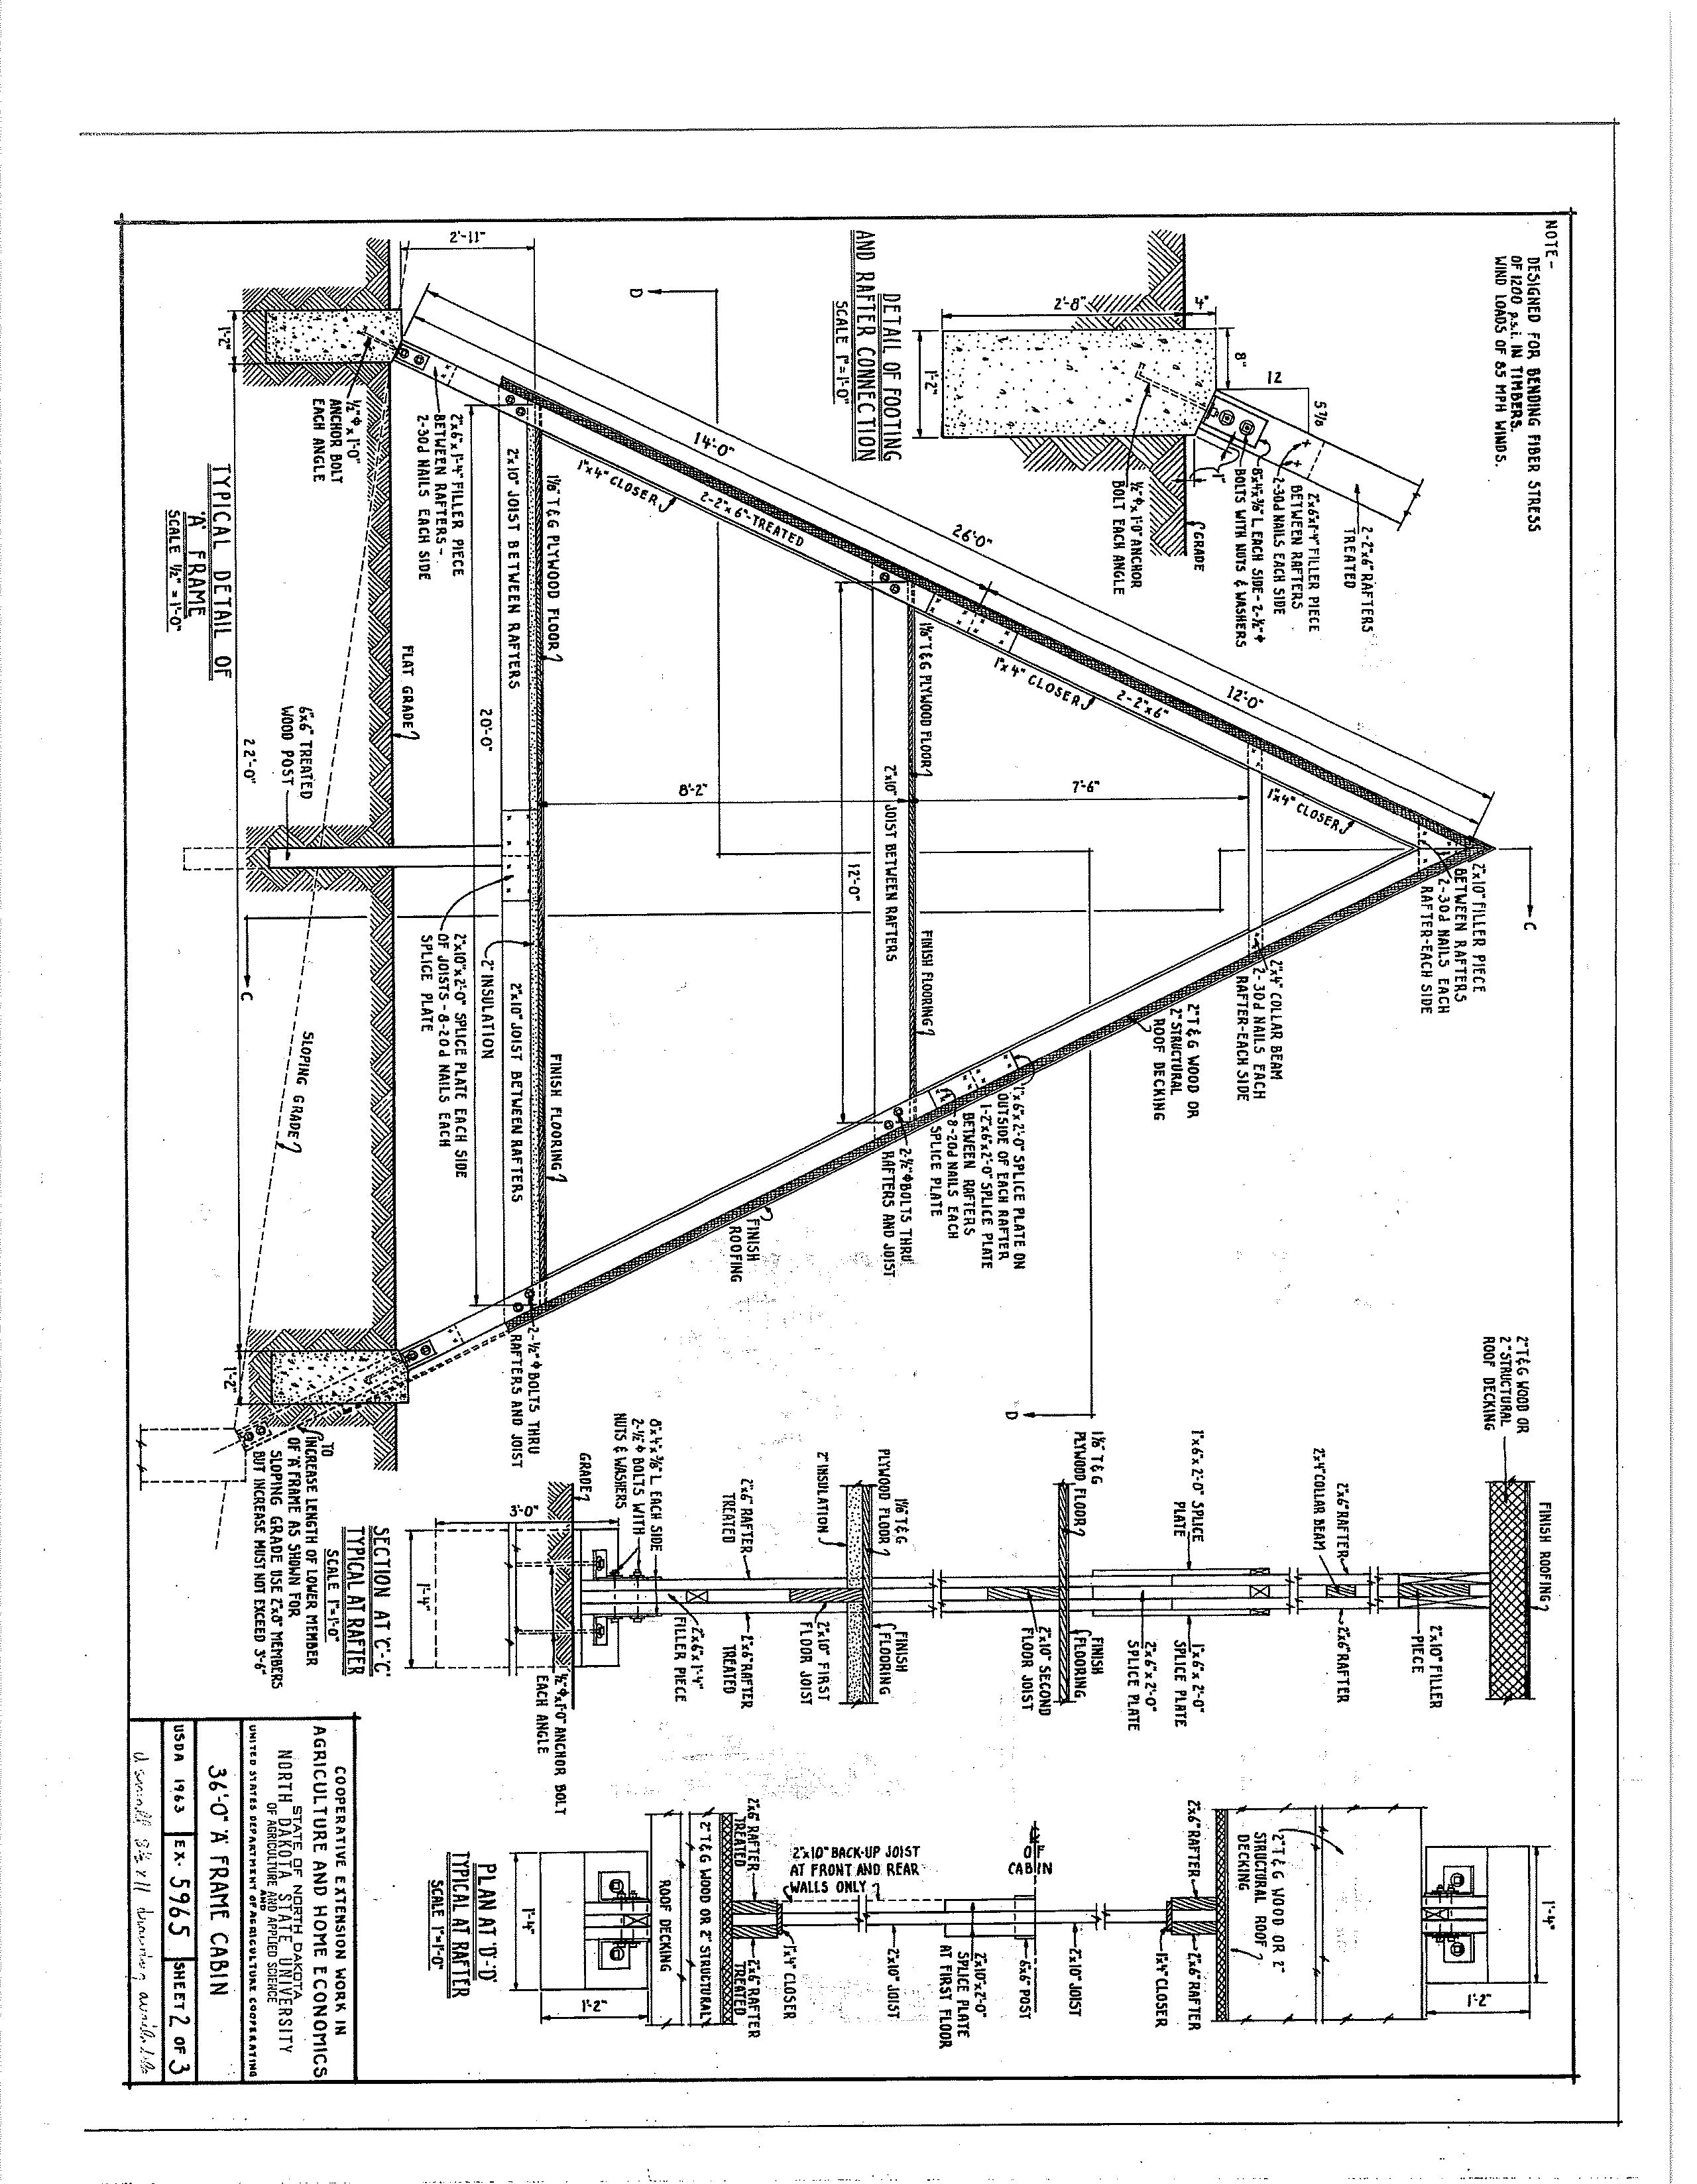 A Frame Floor Plans With Regard To 1000 Images About A Frame House On Pinterest Cabin Kits Wood A Frame House Plans A Frame Cabin Plans A Frame House